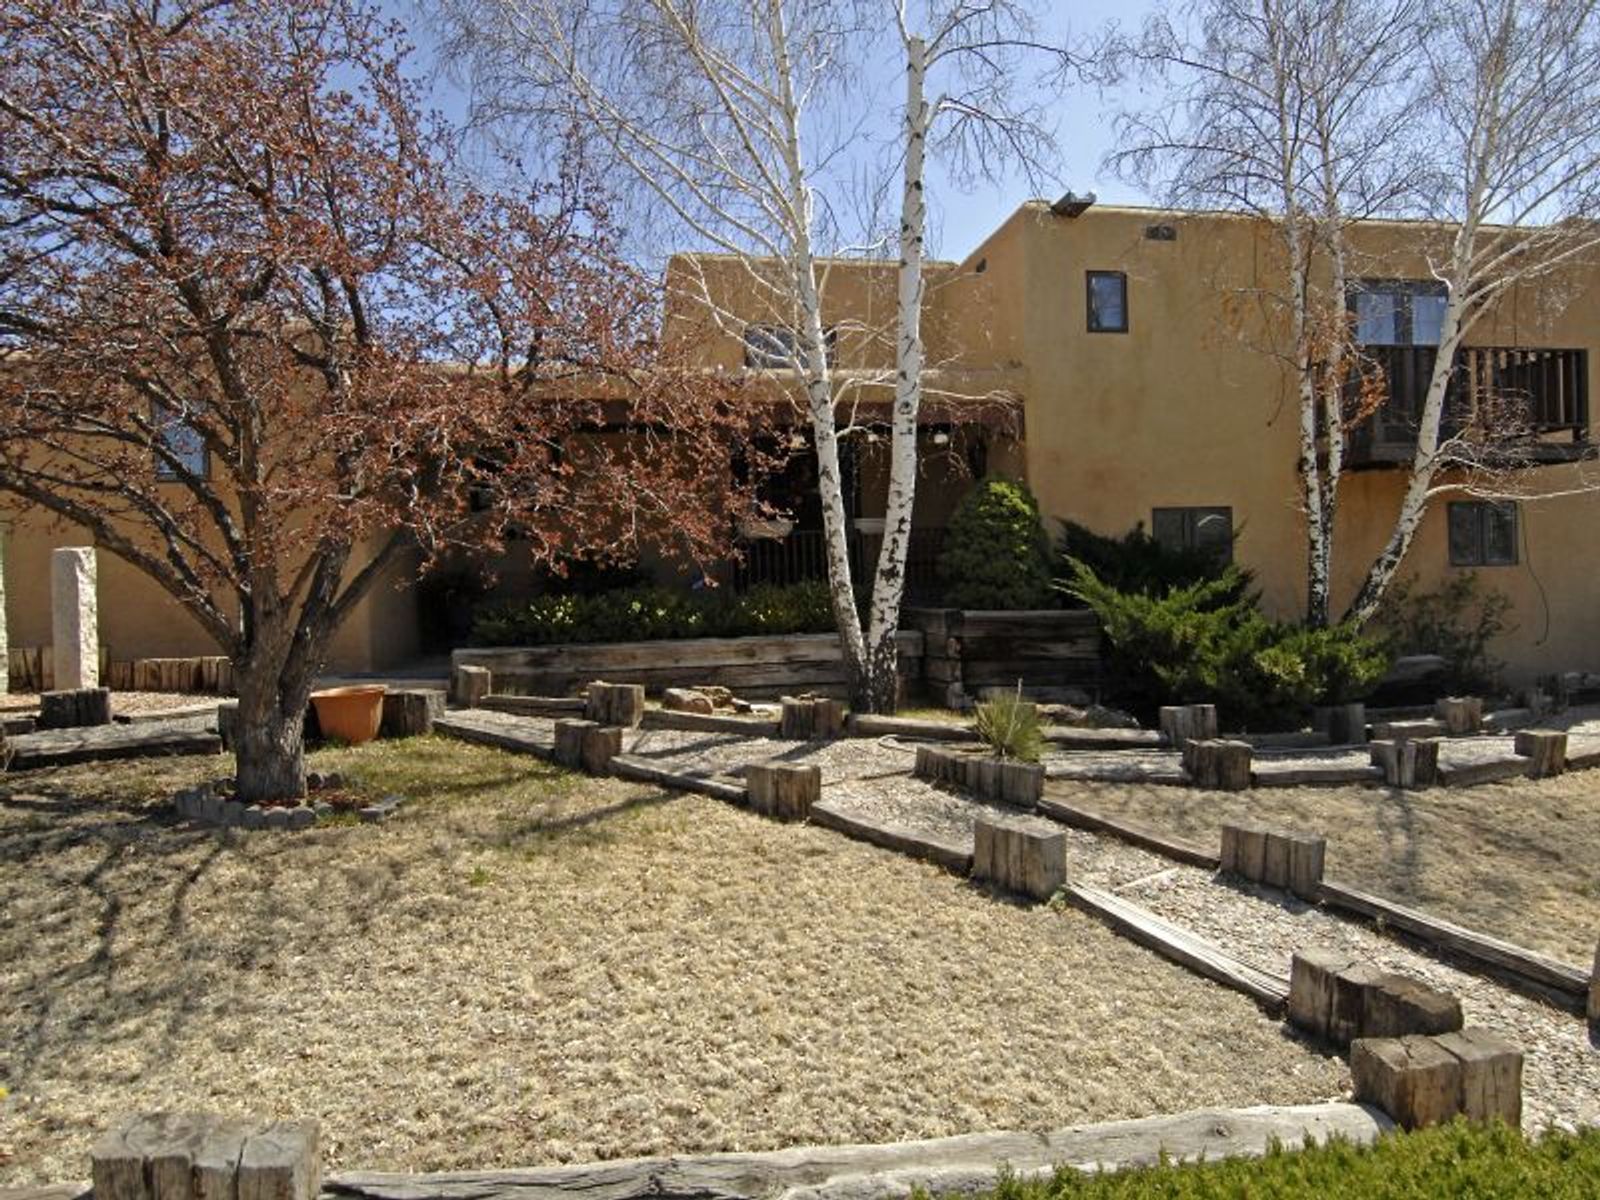 1414  Miracerros South Loop, Santa Fe NM Single Family Home - Santa Fe Real Estate